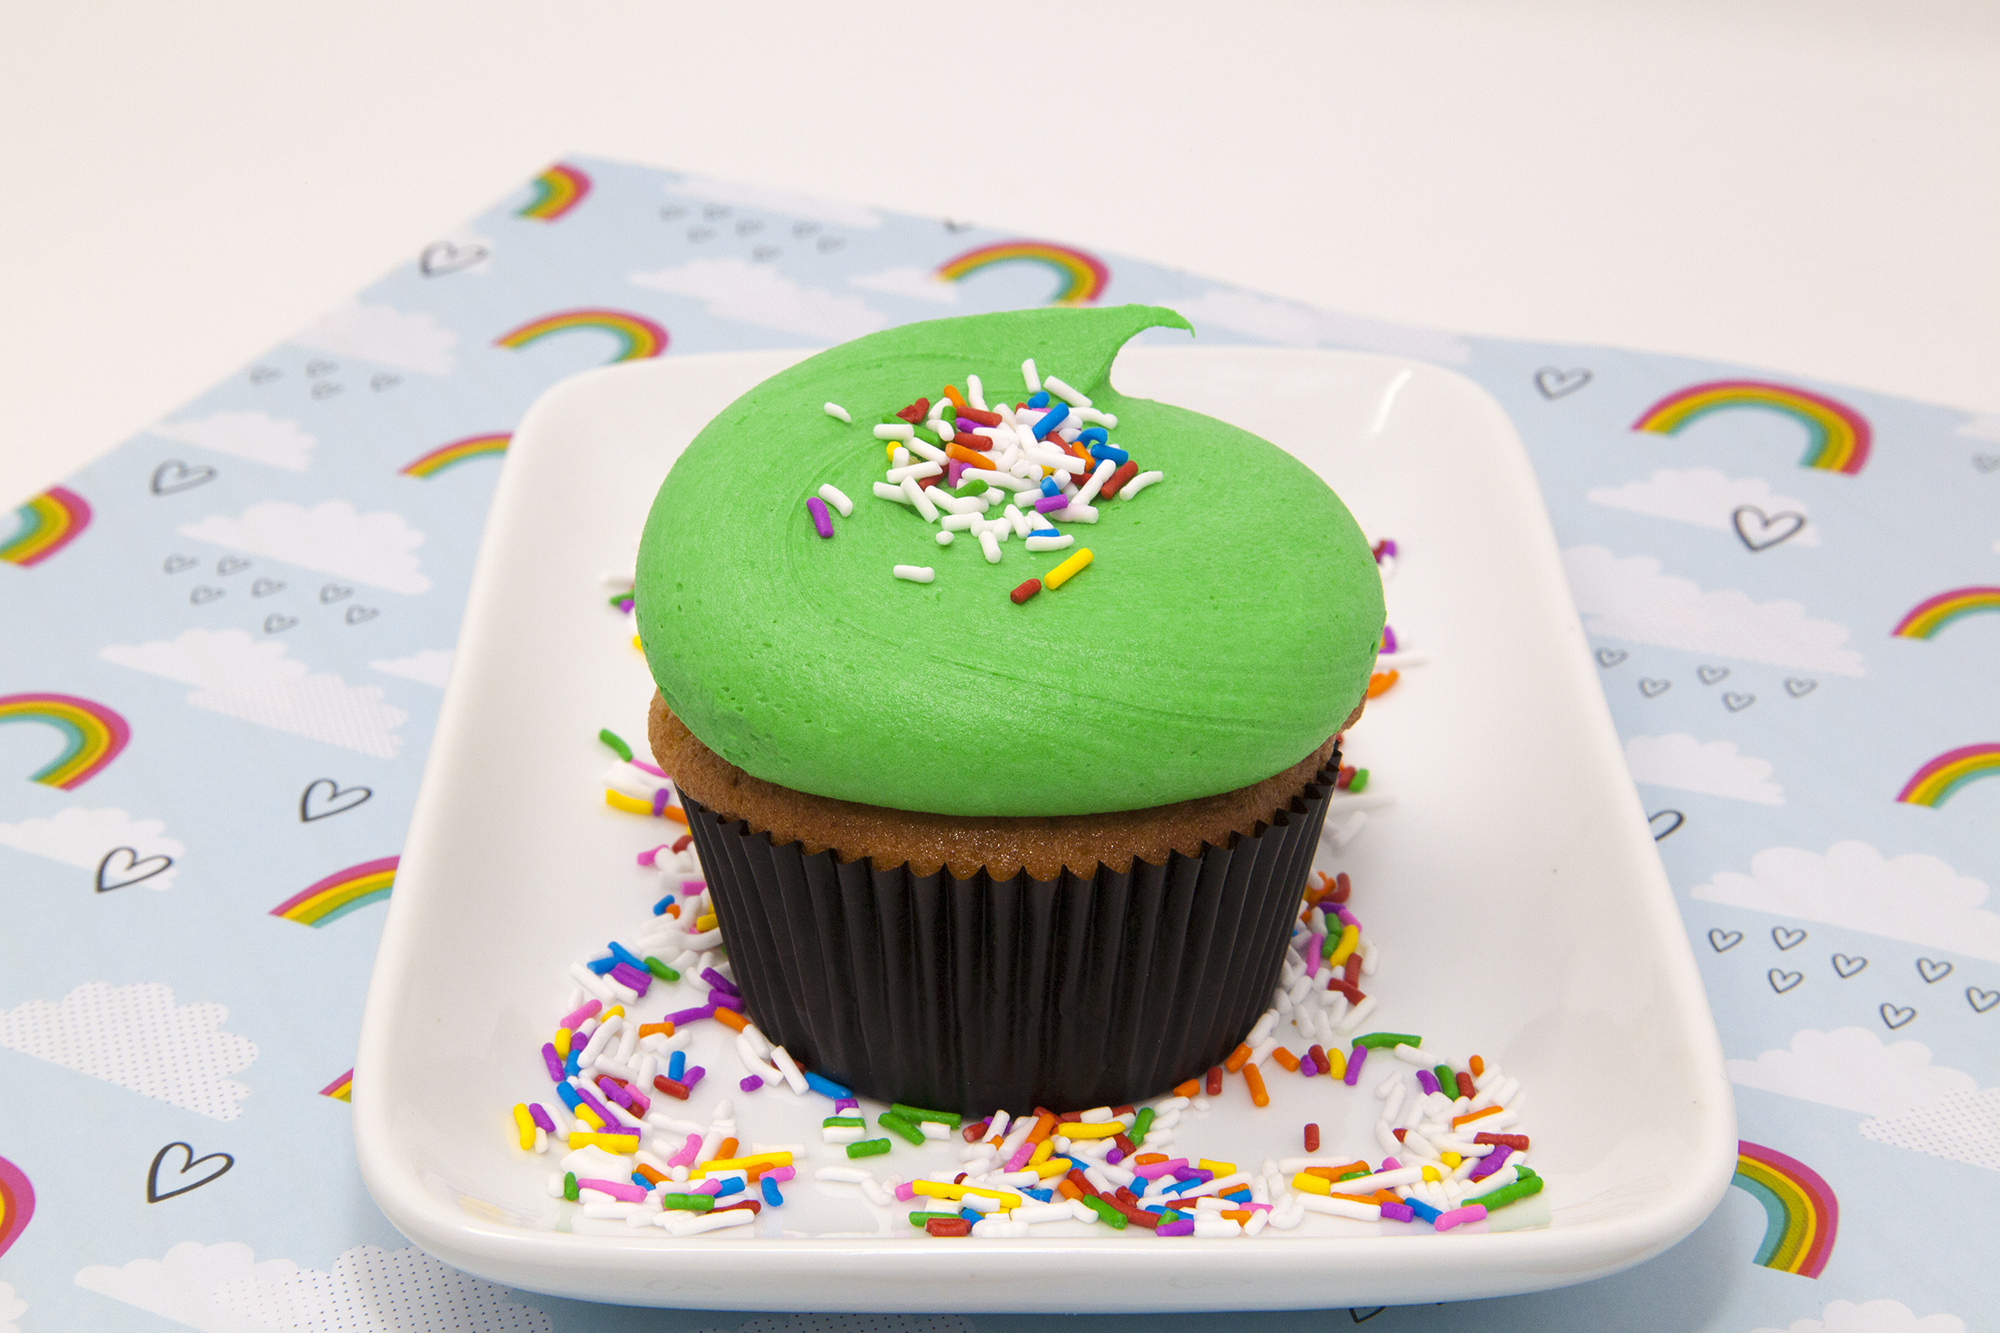 Shamrock Vanilla  - Basically a Vanilla Cupcake with green shamrock green frosting and rainbow sprinkles - Simple, cute and festive!